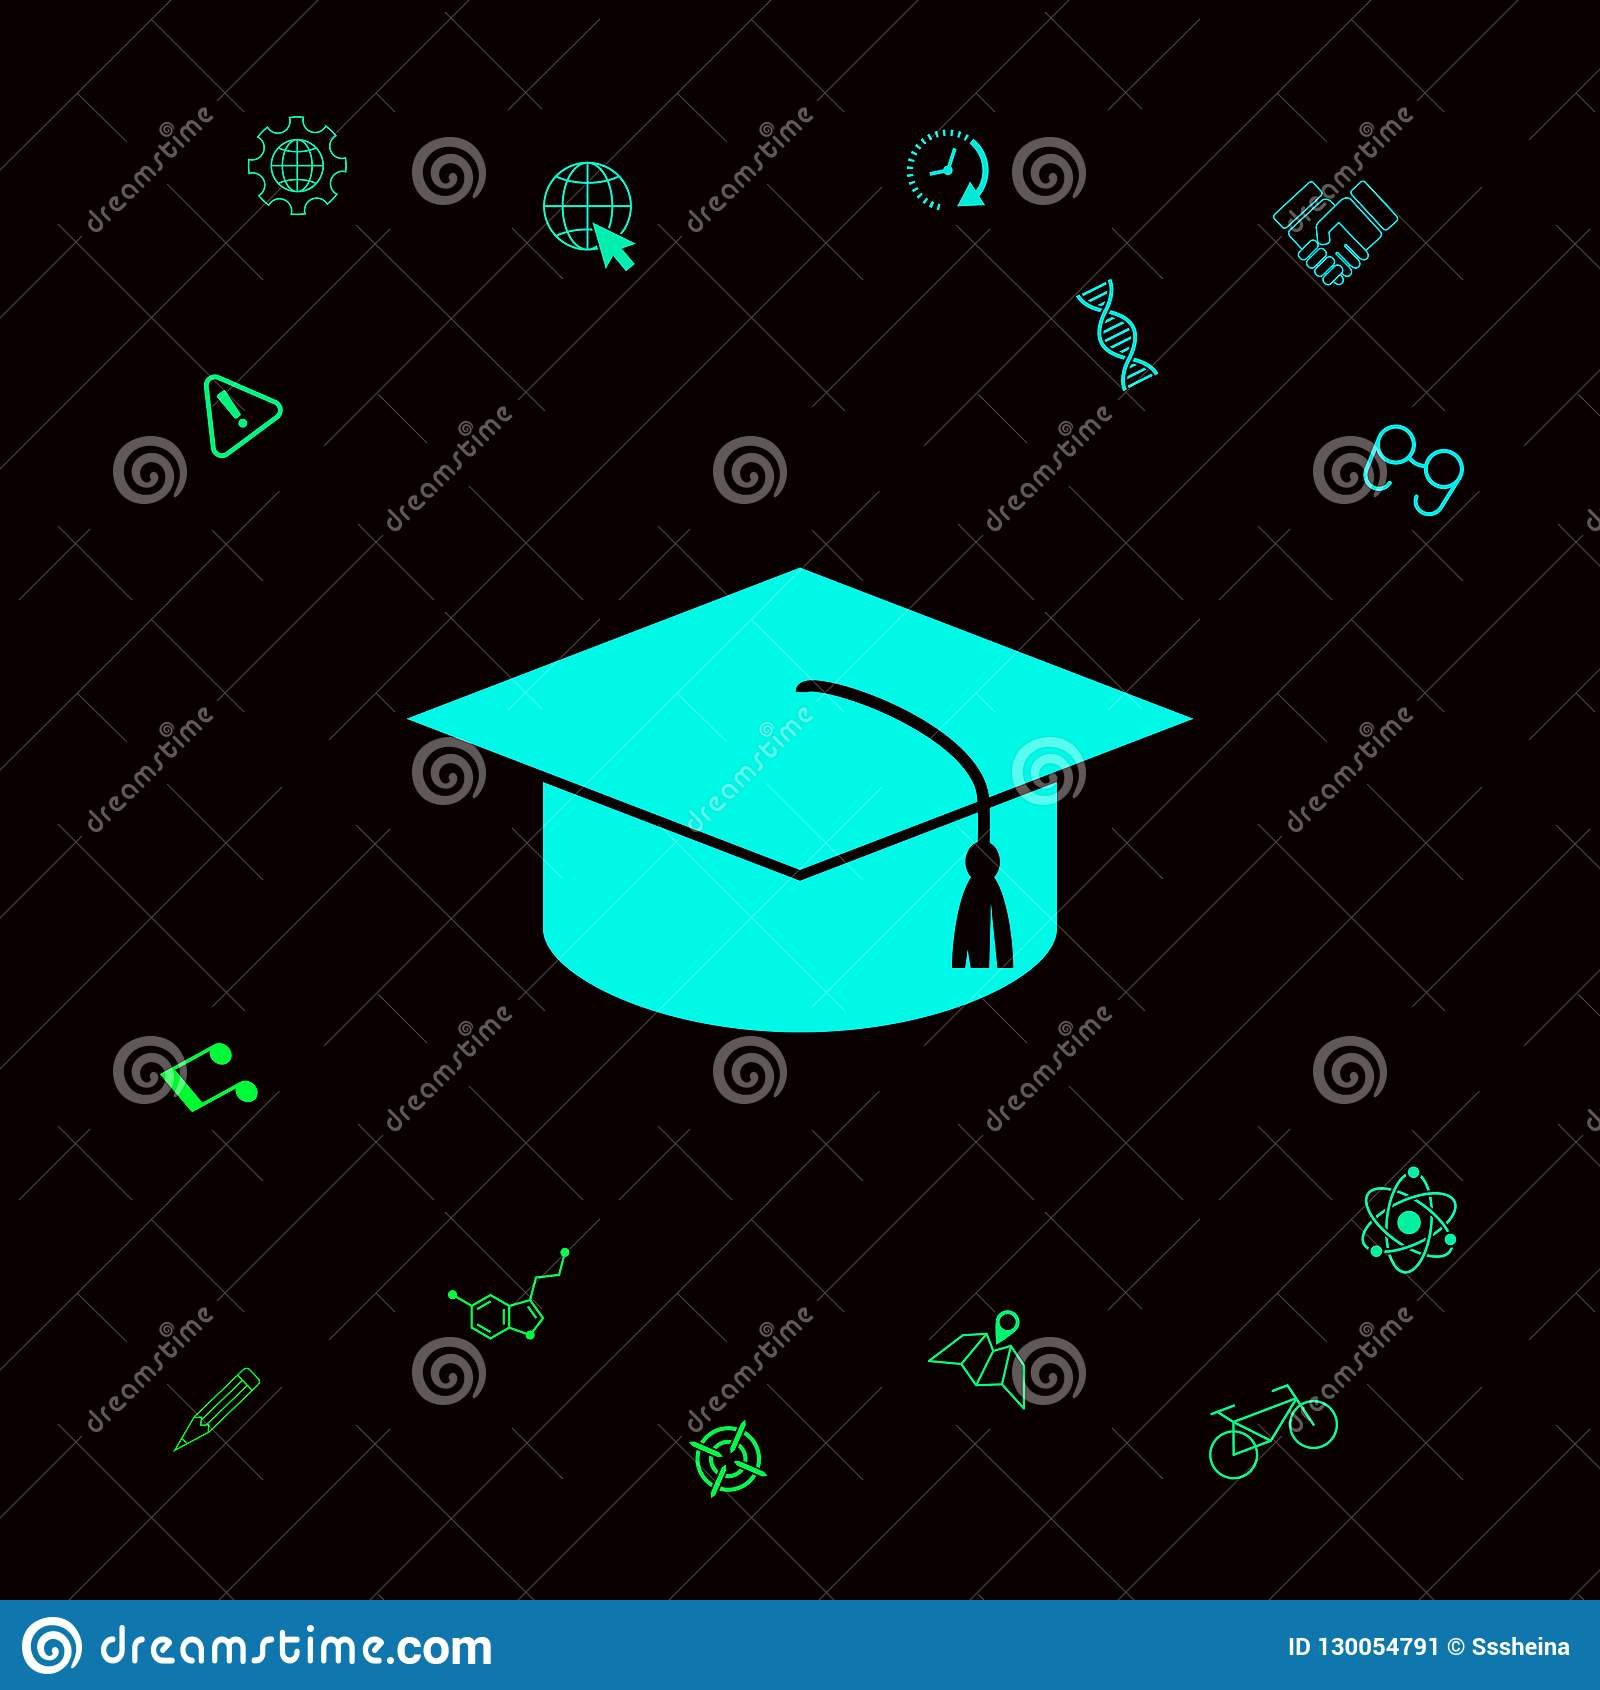 Master cap for graduates, square academic cap, graduation cap icon . Graphic elements for your designt